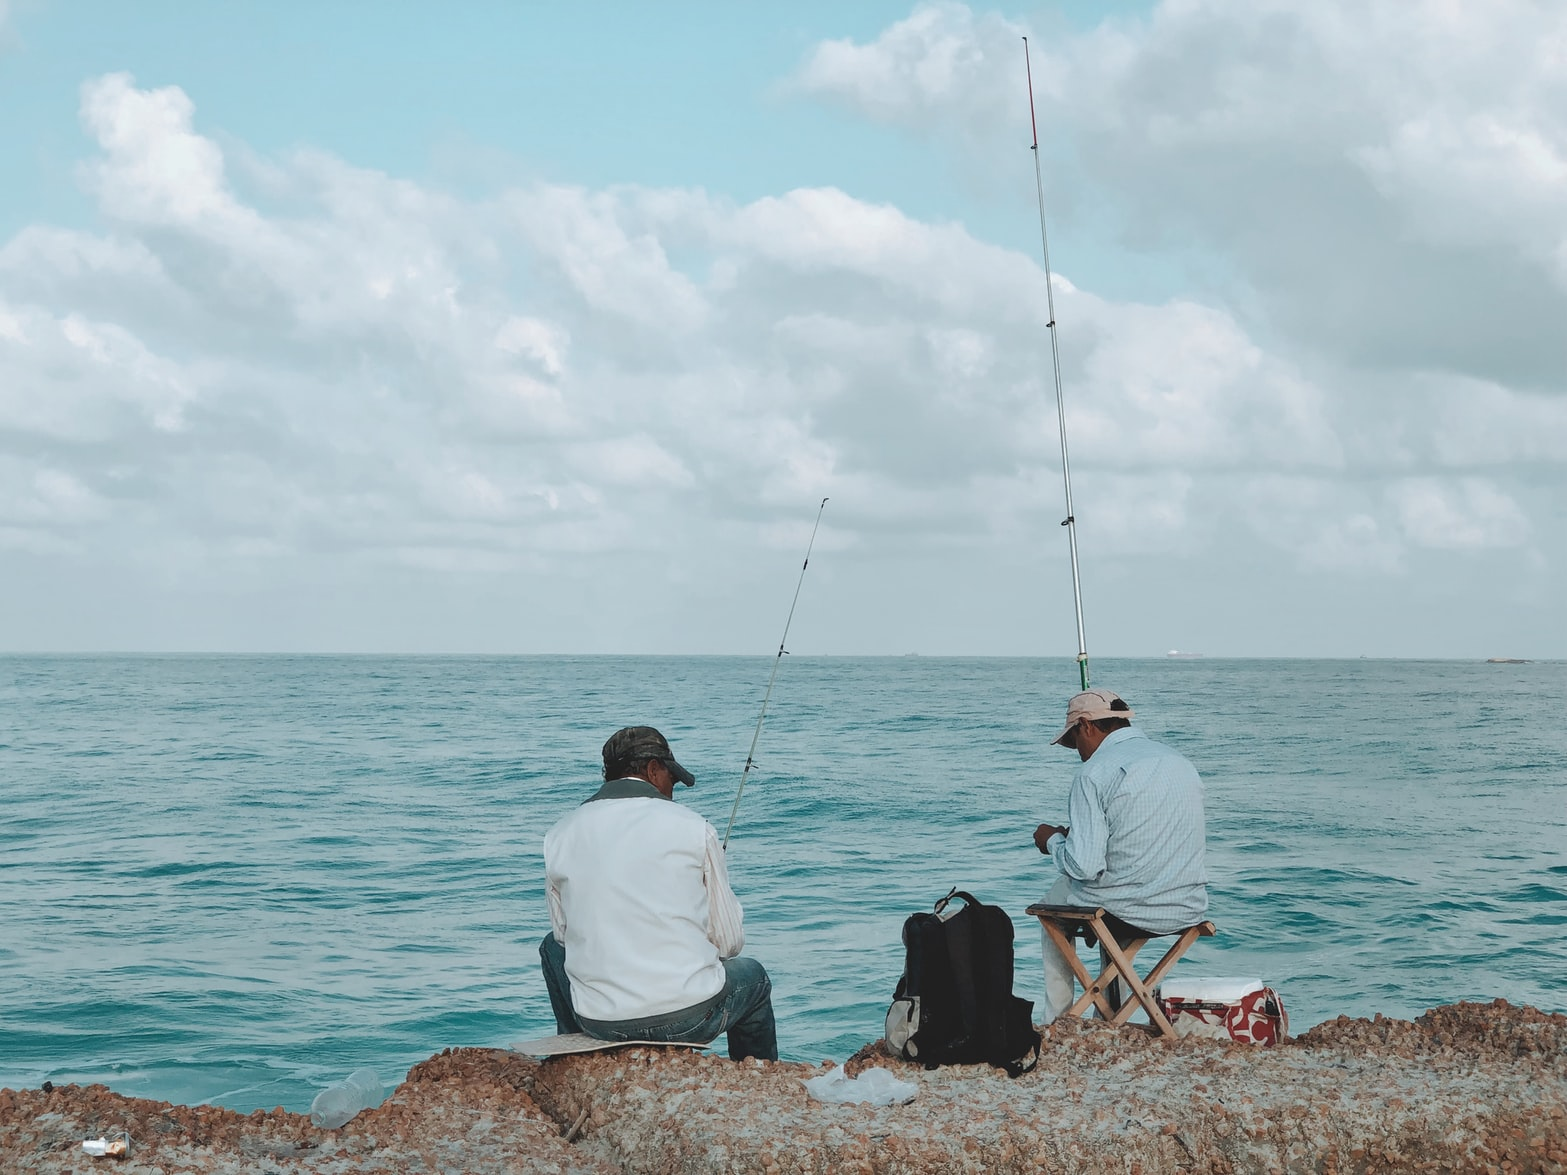 2 men at the shore is doing some fly fishing at the ocean